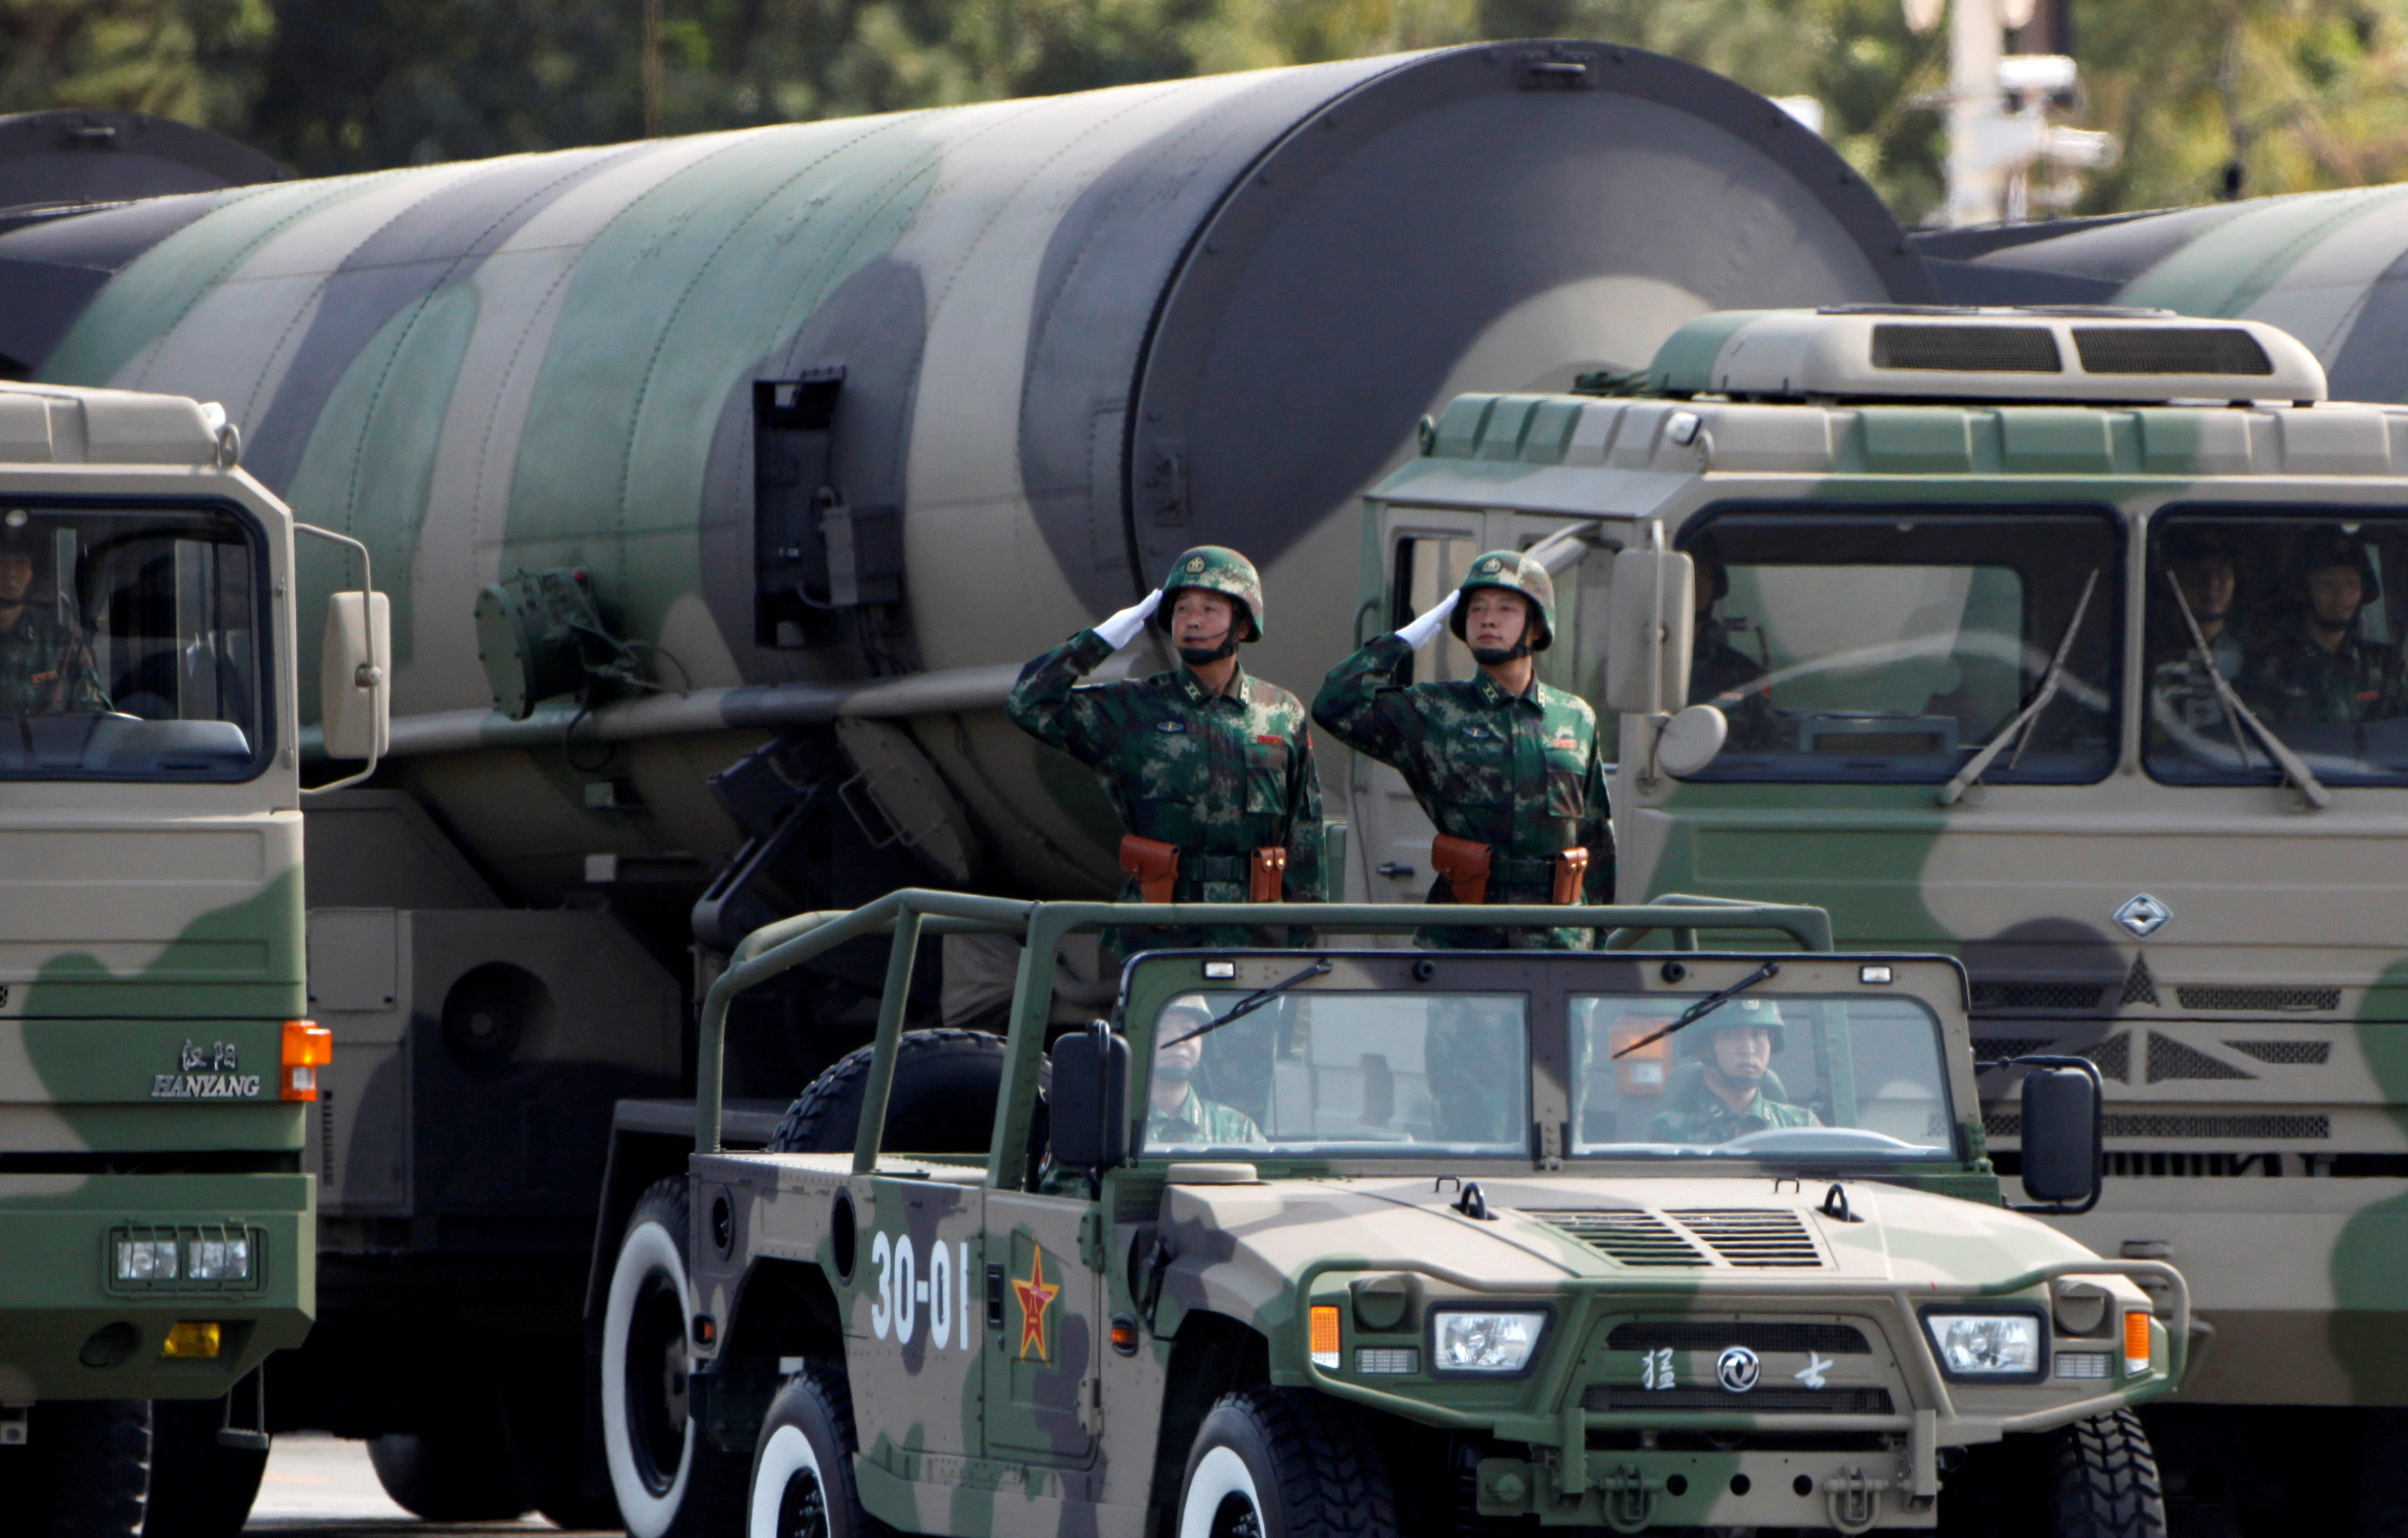 People's Liberation Army (PLA) soldiers salute in front of nuclear-capable missiles during a massive parade to mark the 60th anniversary of the founding of the People's Republic of China in Beijing October 1, 2009.  REUTERS/David Gray/File Photo